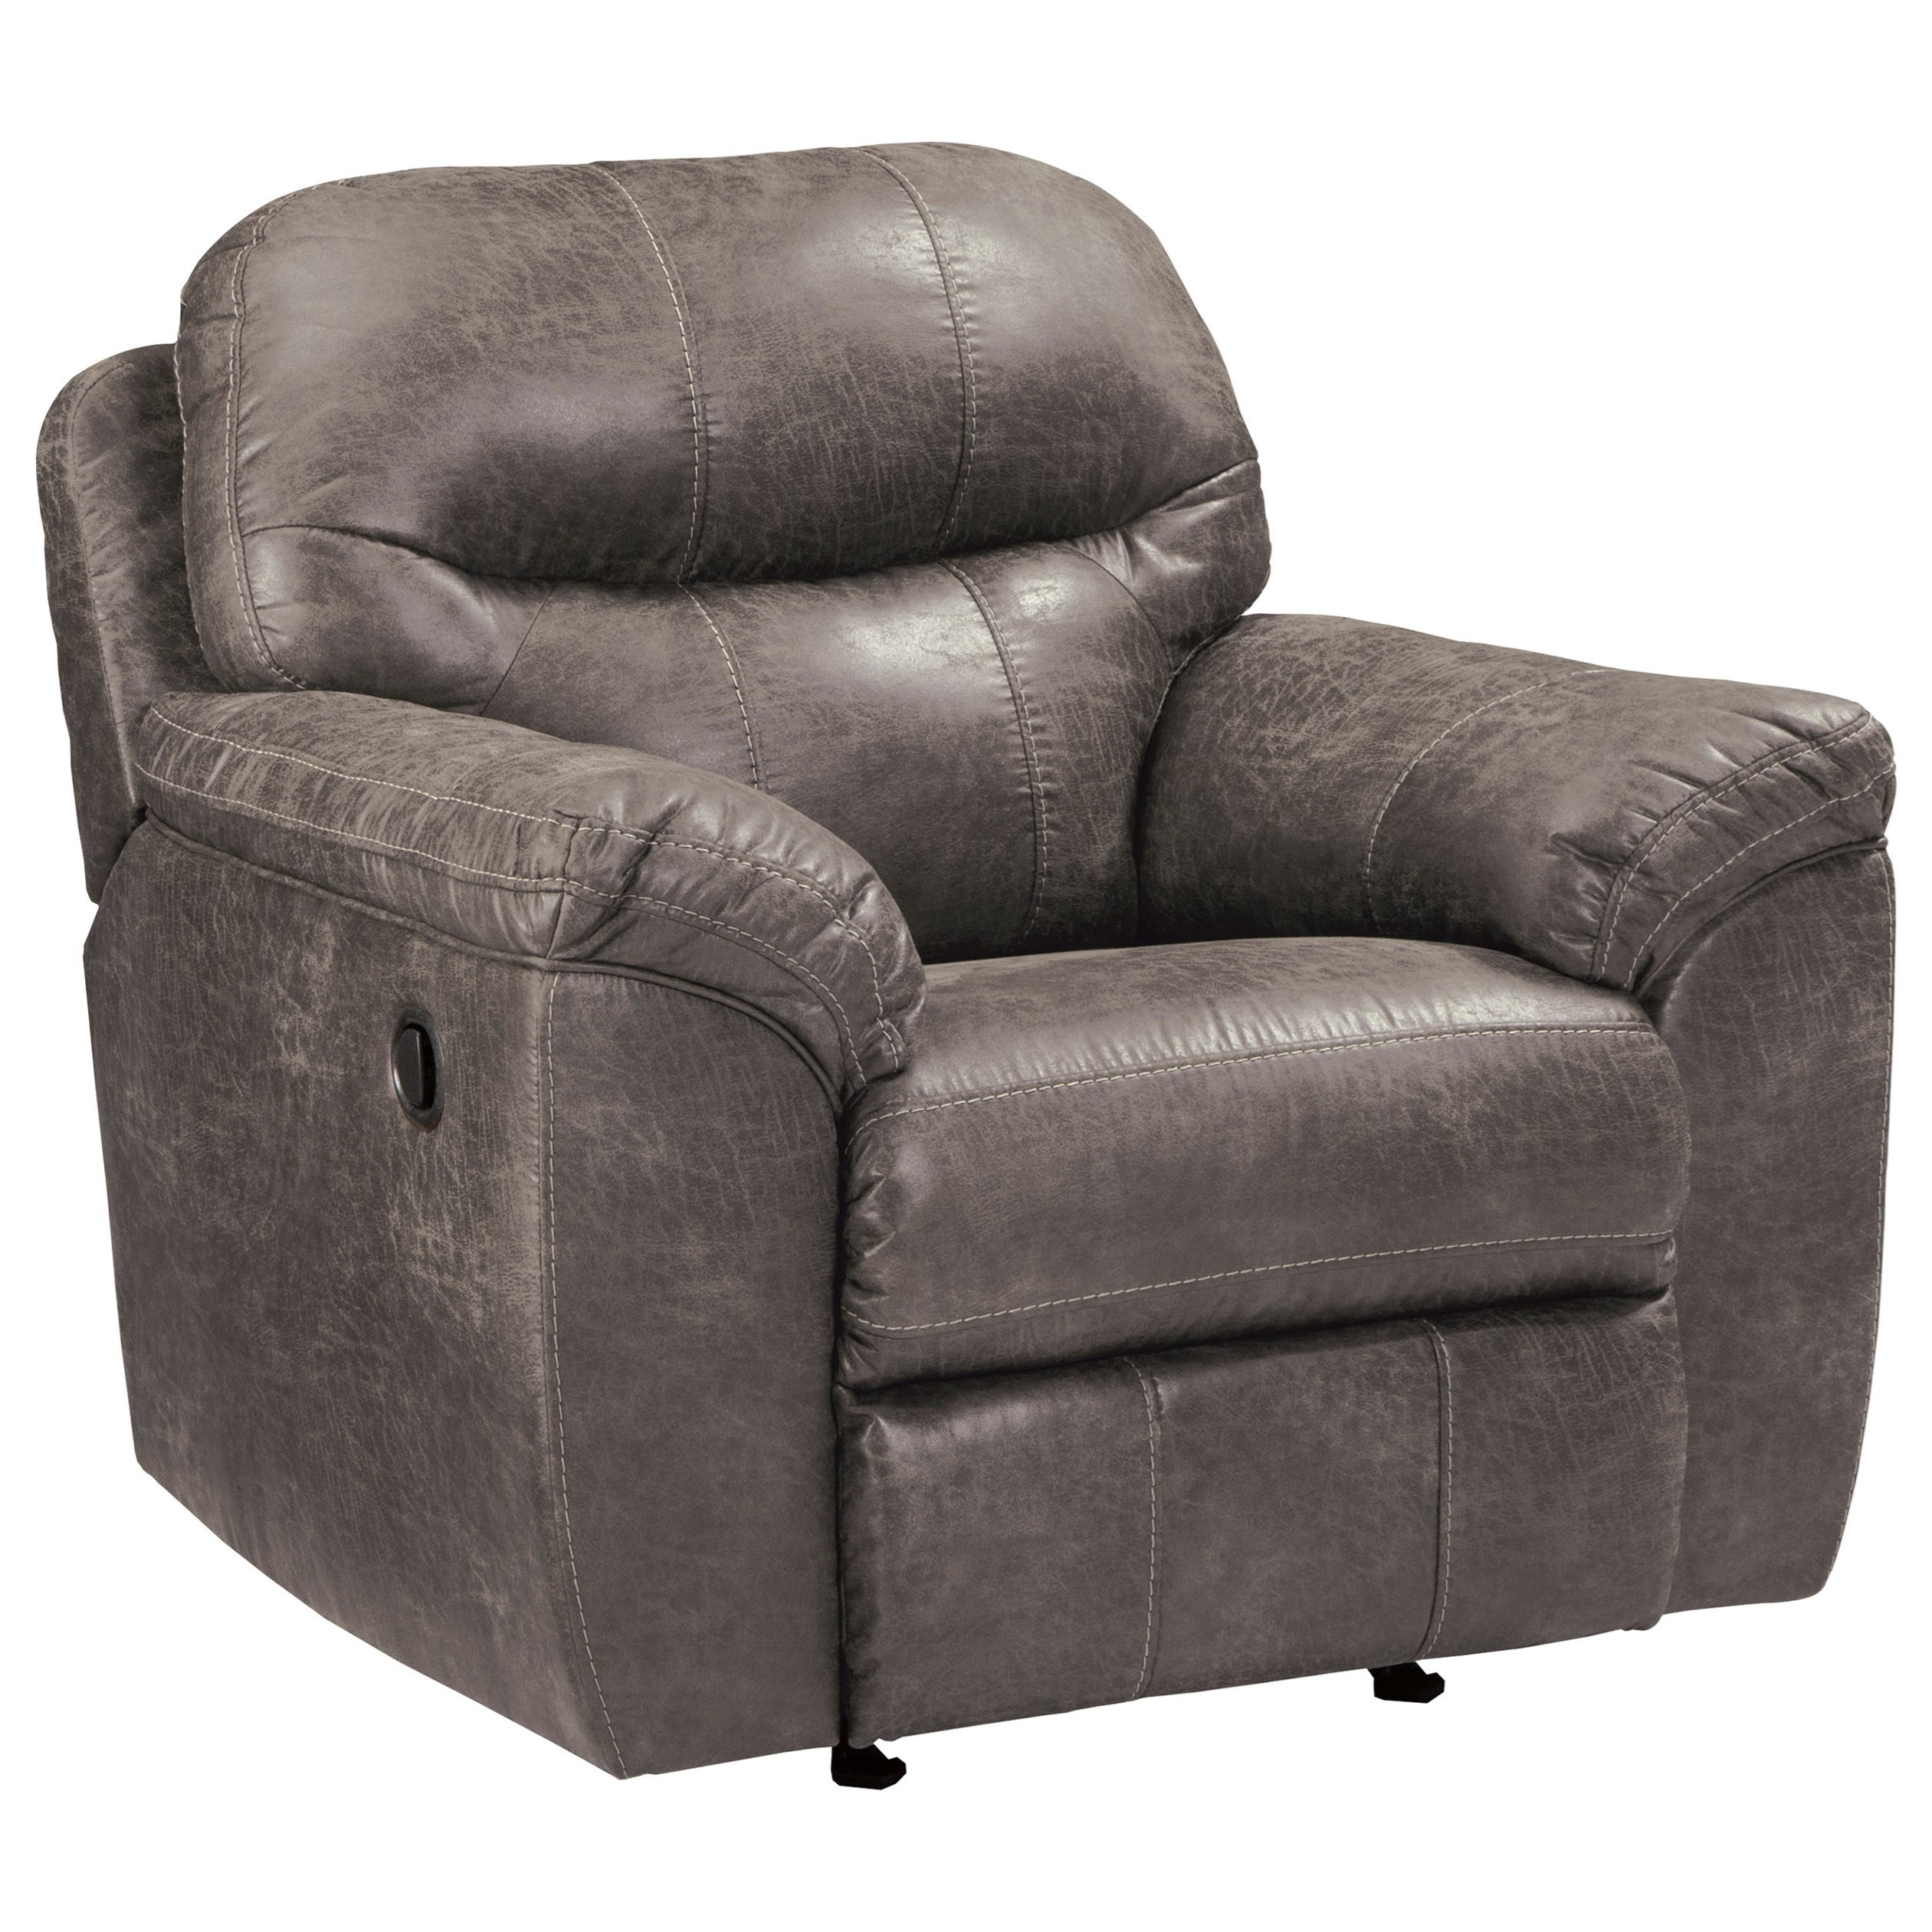 Benchcraft Havilyn Rocker Recliner - Item Number: 3370525